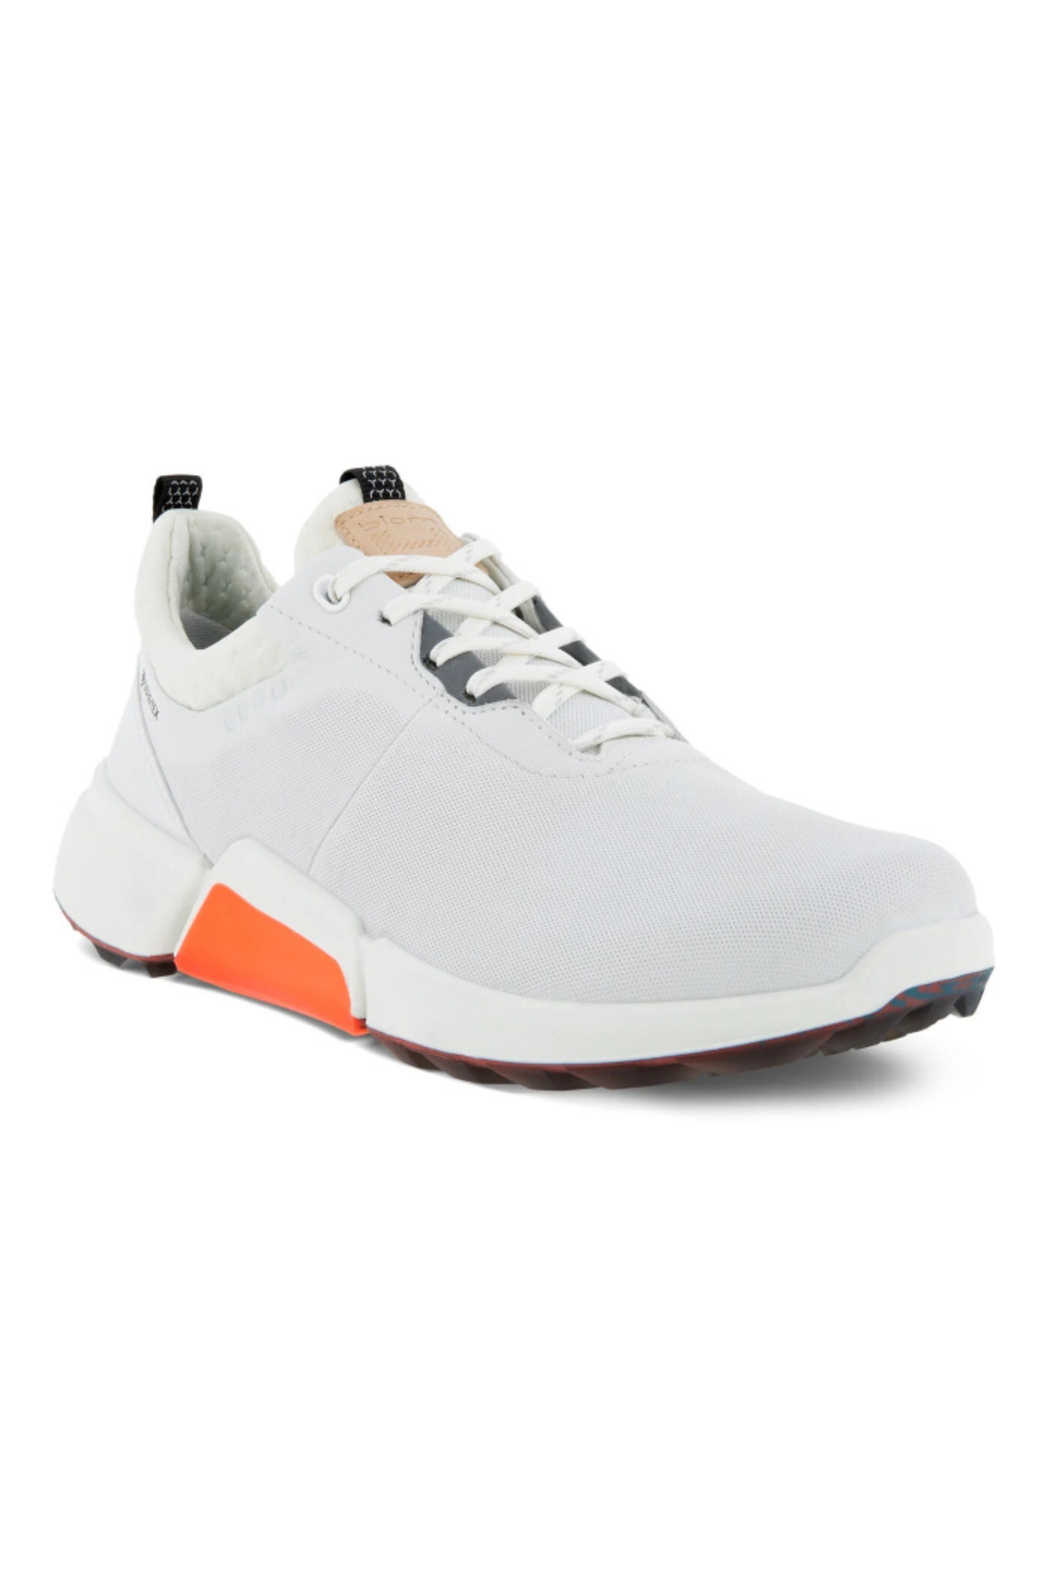 ECCO Ecco Women's Golf BIOM H4 Golf Shoe - Main Image